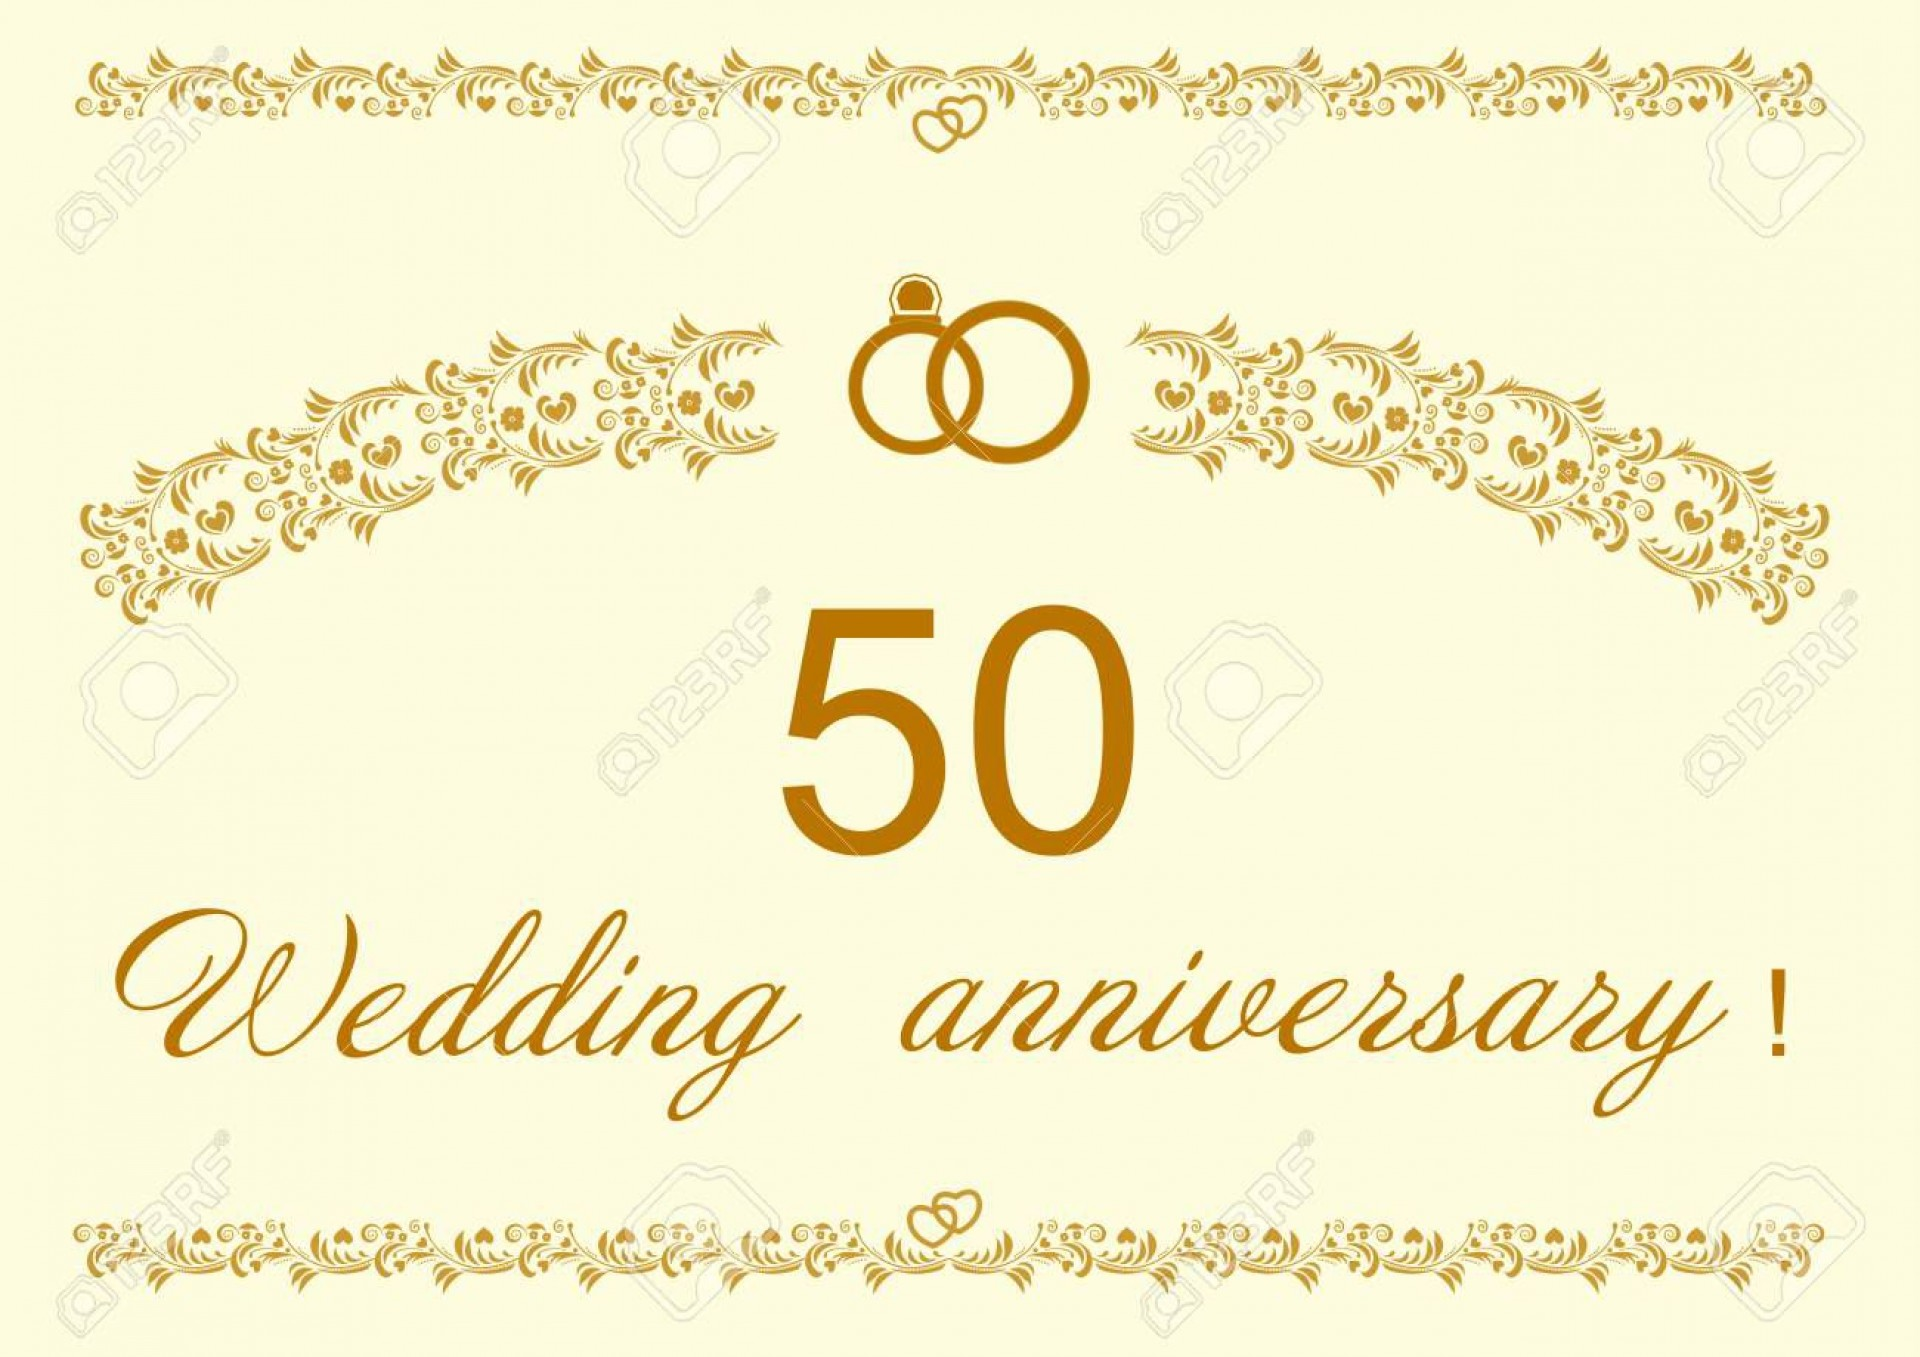 006 Top 50th Wedding Anniversary Invitation Design High Definition  Designs Wording Sample Card Template Free Download1920